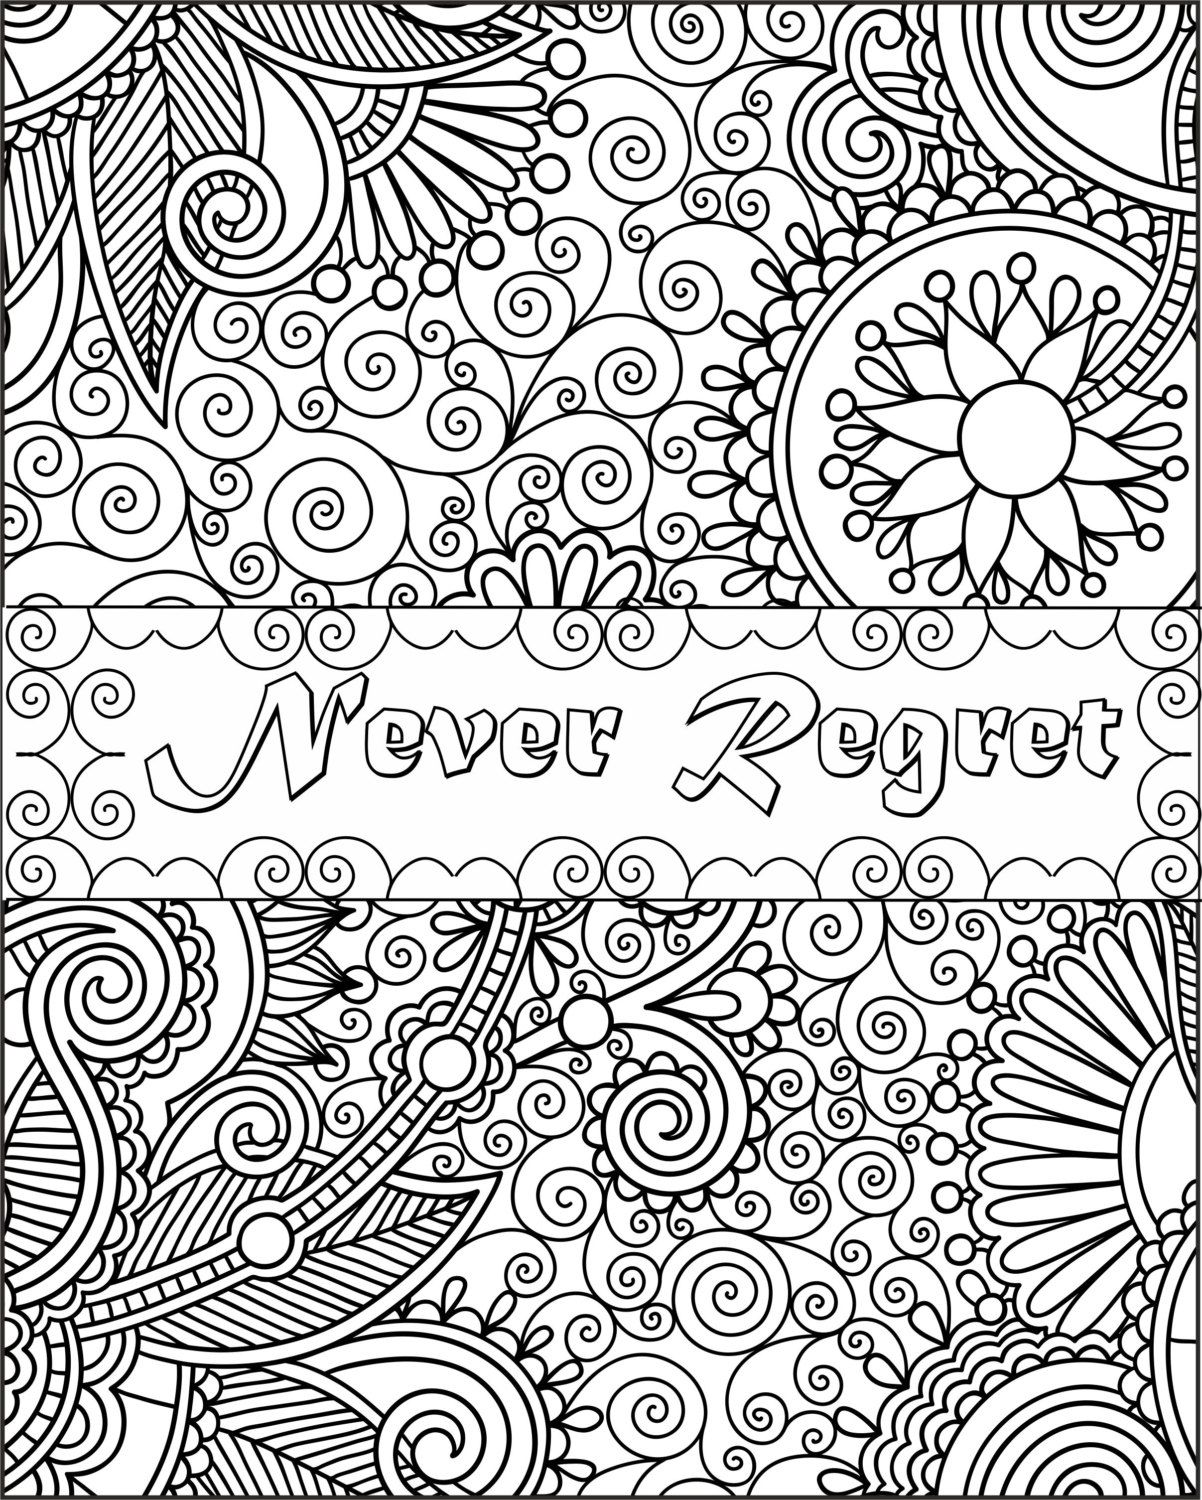 - Never Regret : Inspirational Fun Quotes Colouring Pages By